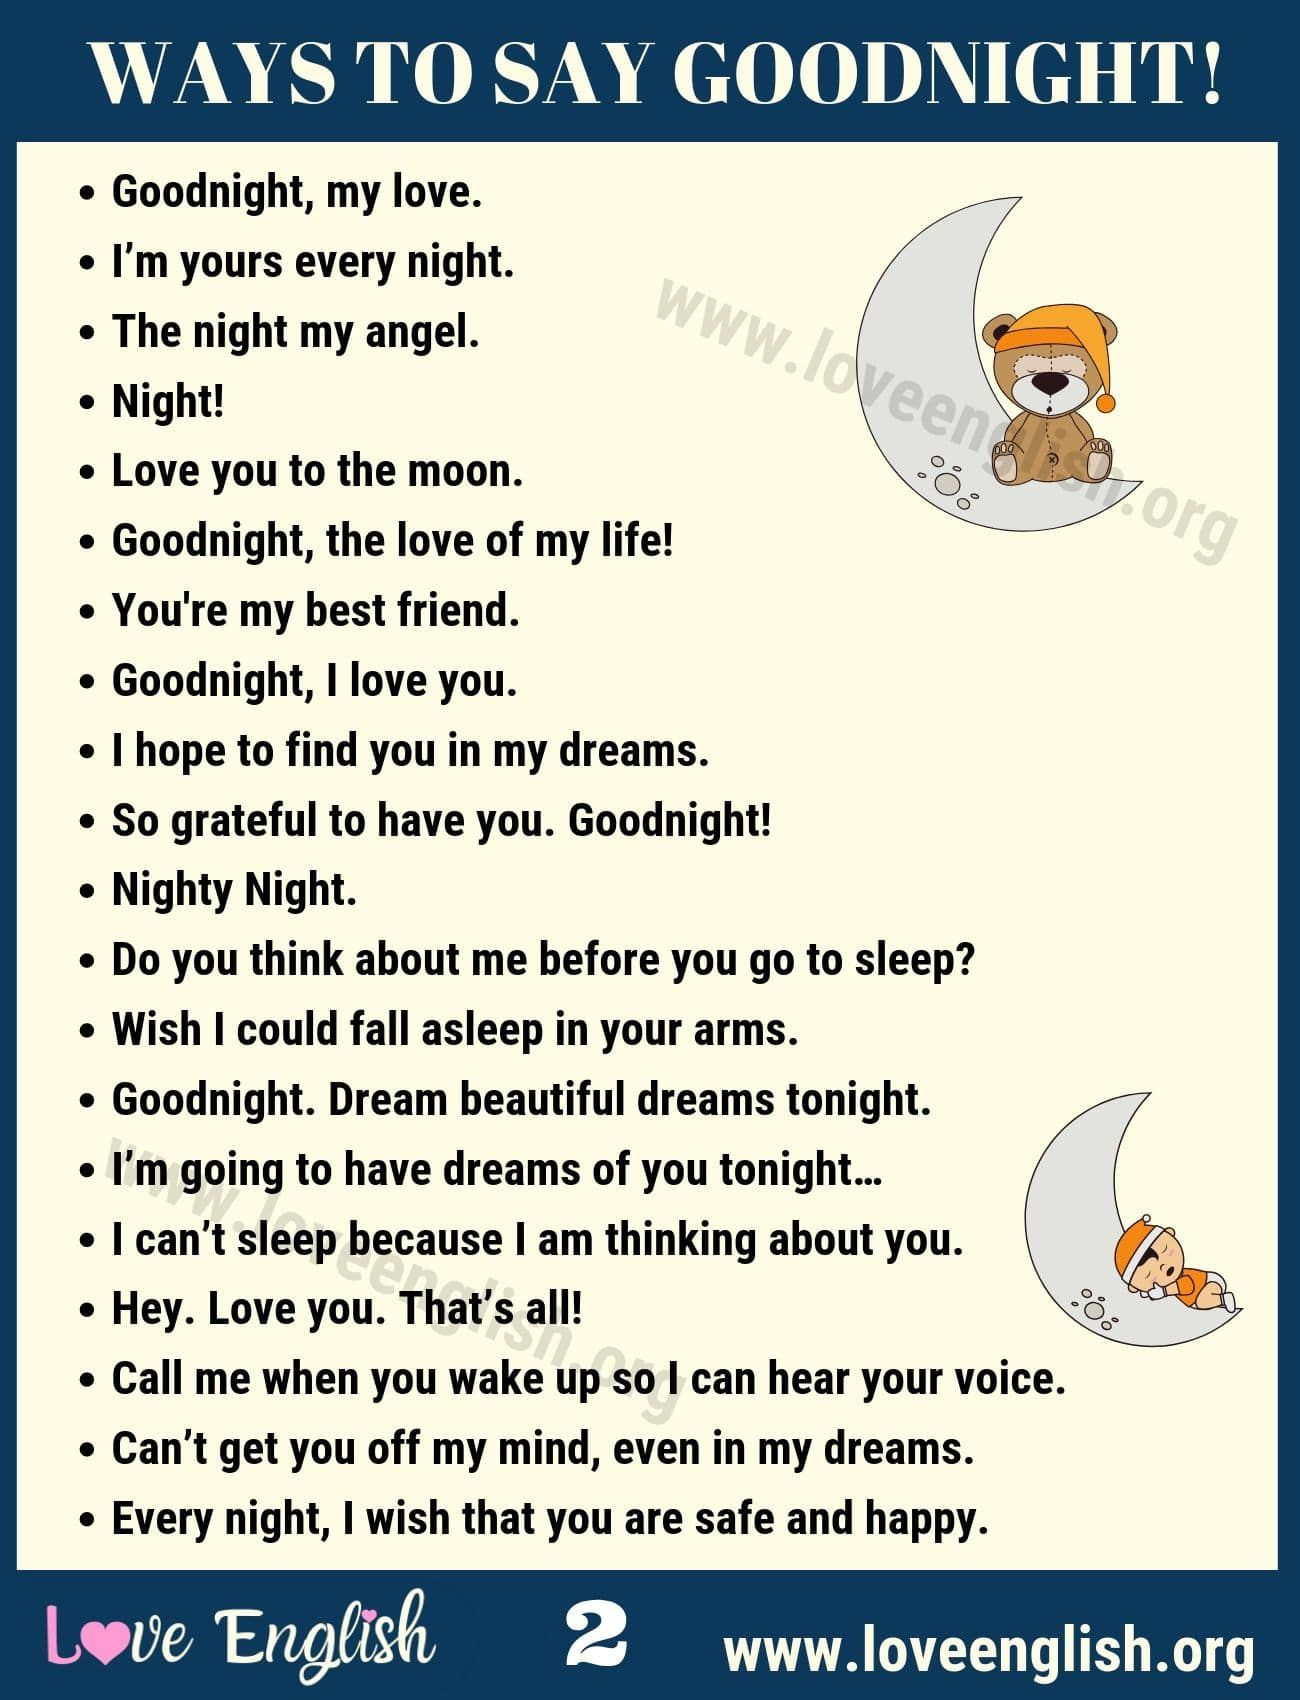 Goodnight Quotes 40 Sweet Ways To Say Goodnight In